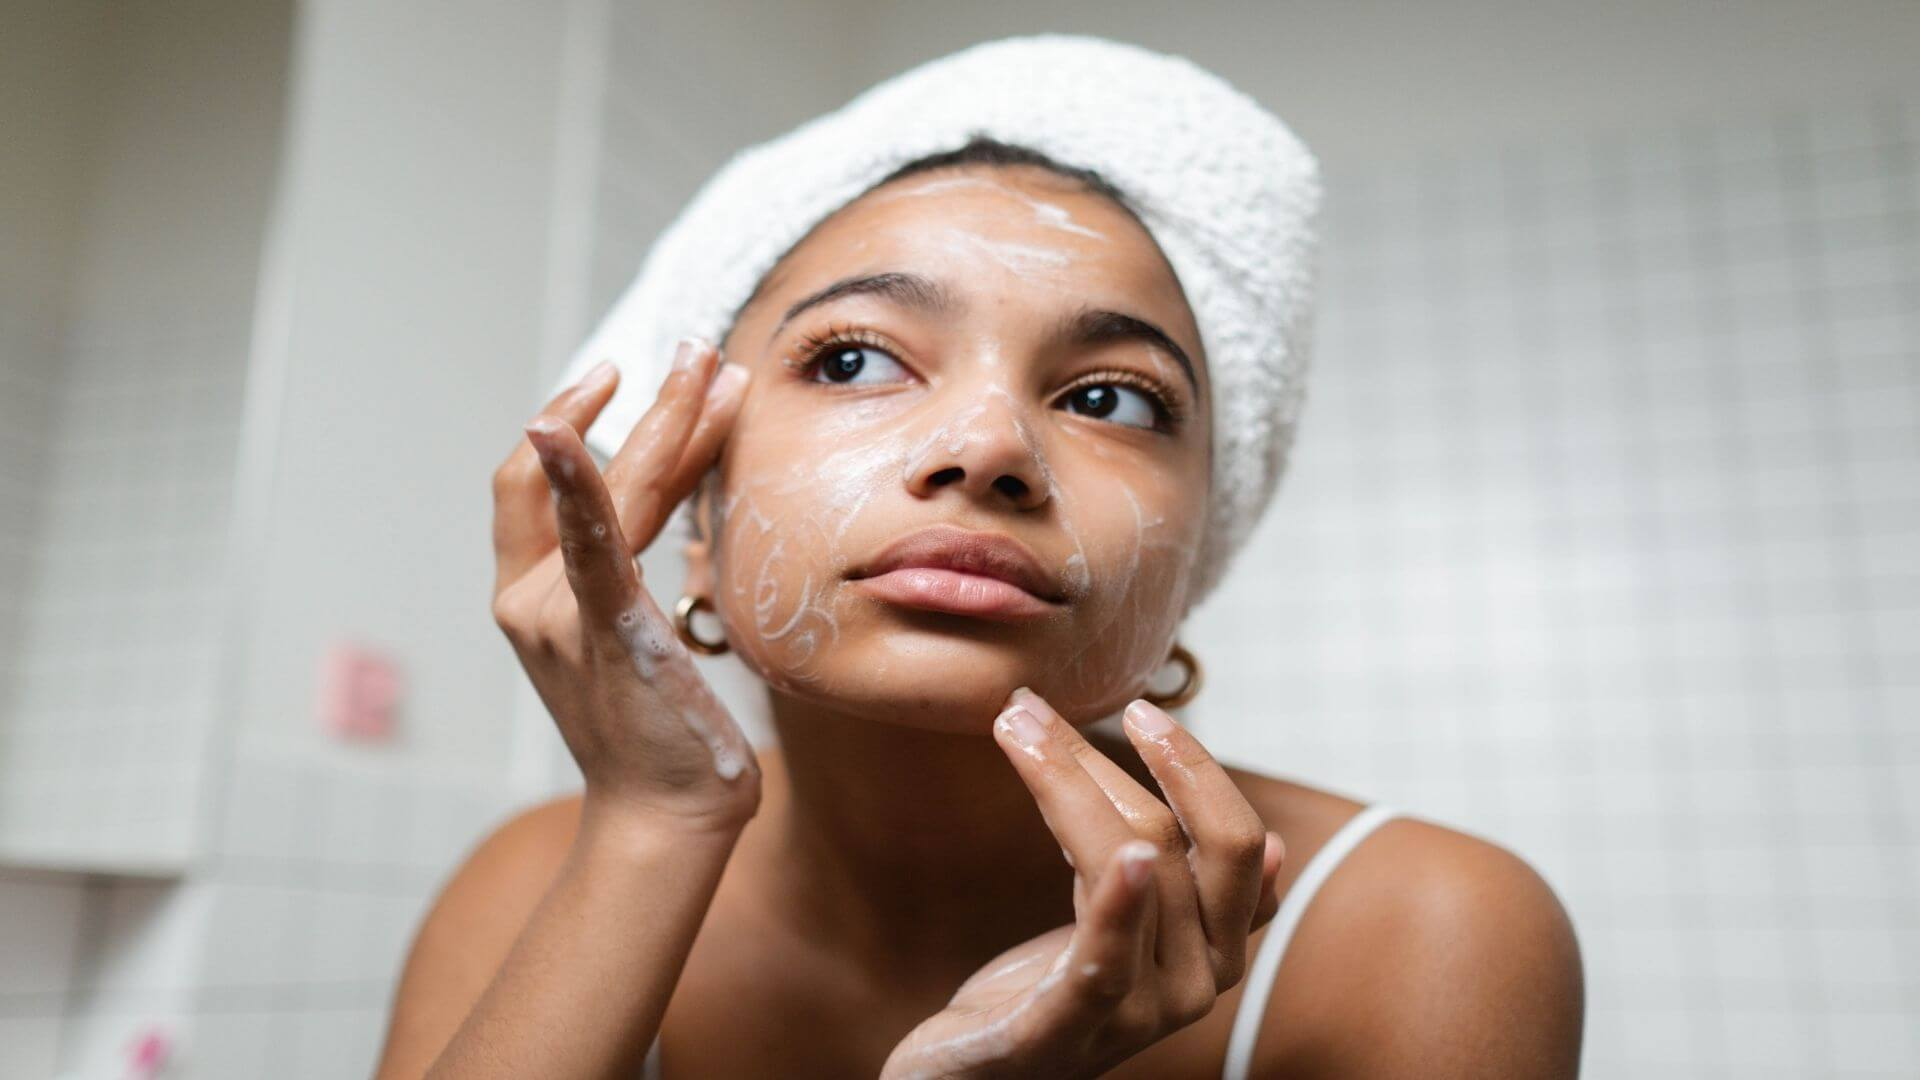 flushing your face with hydrating face wash